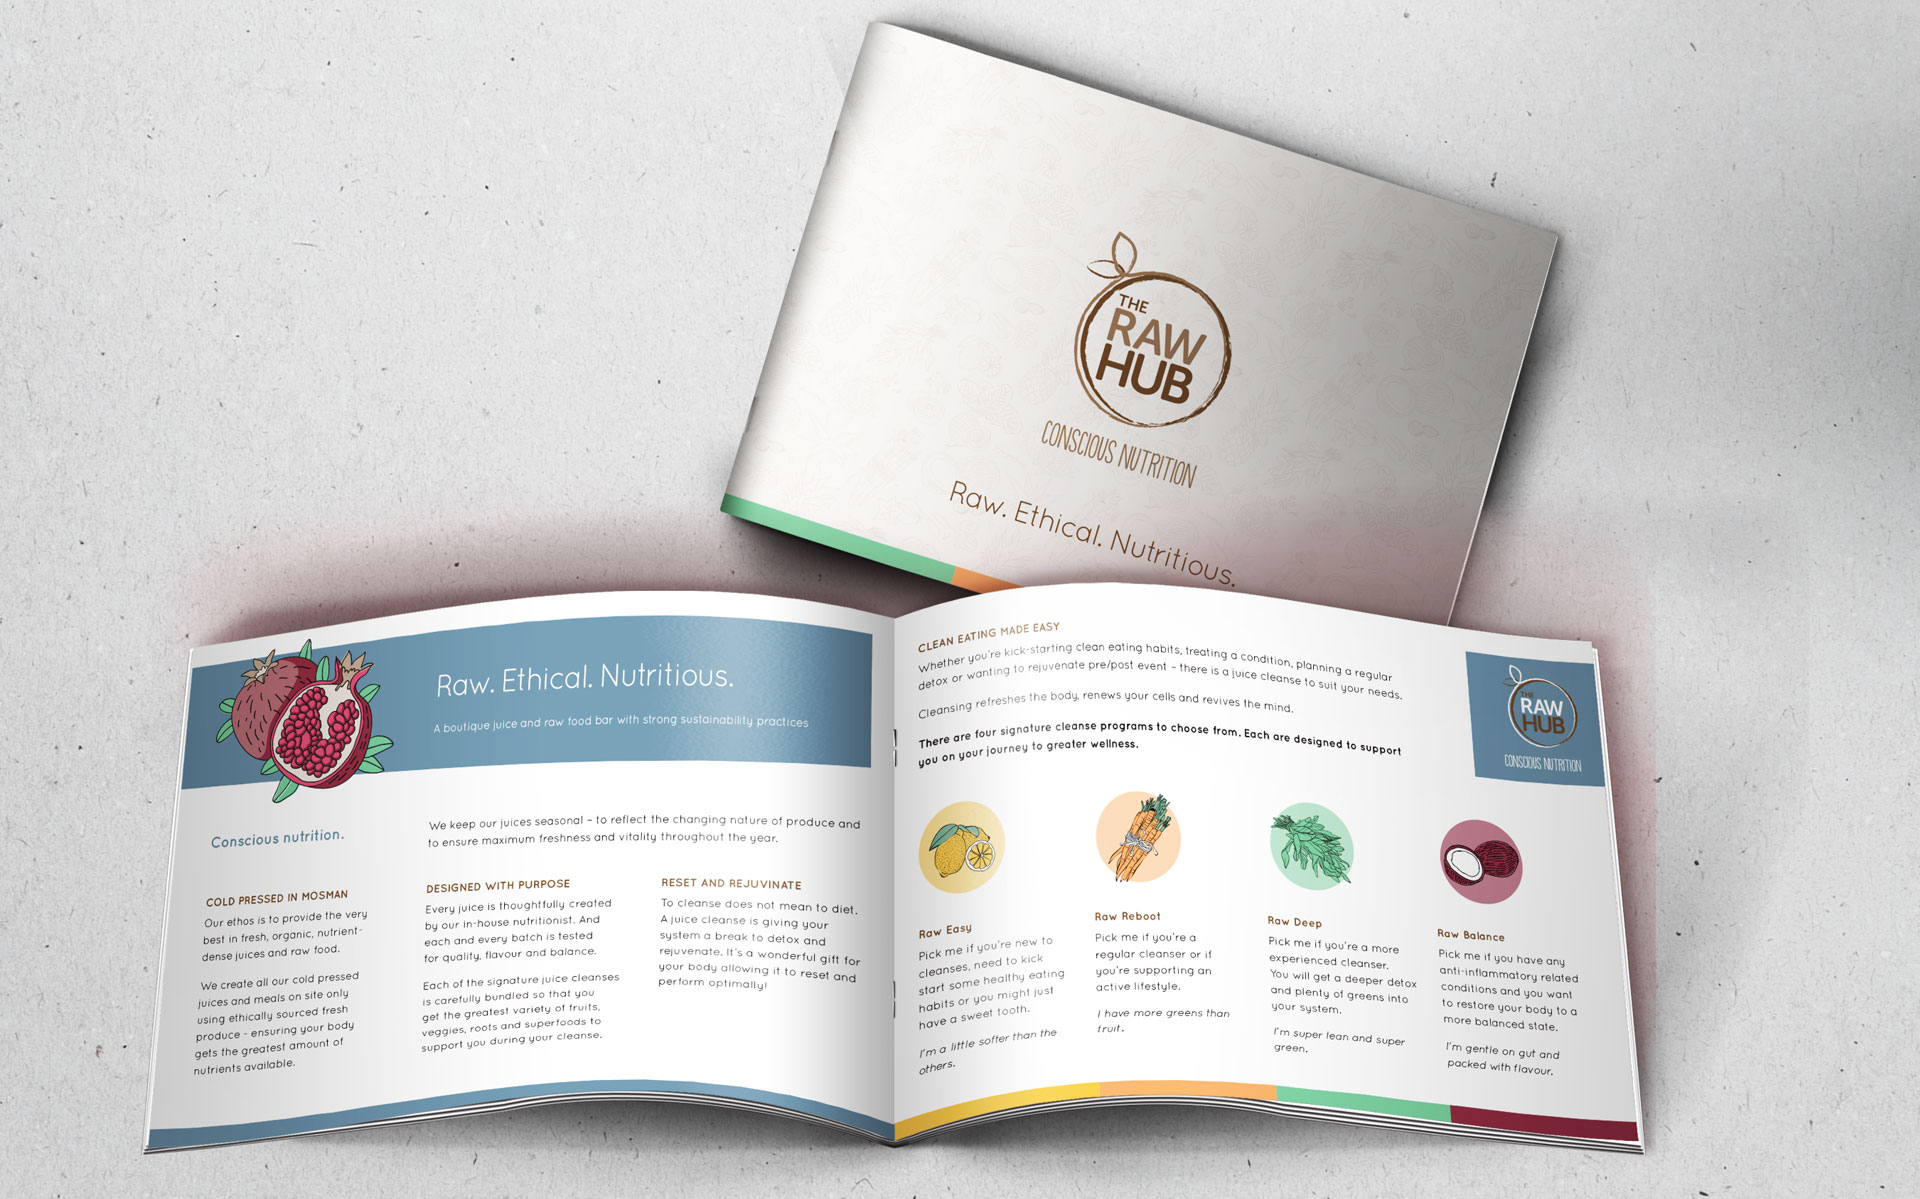 The Raw Hub branding elements & marketing designed by Amy at Yellow Sunday